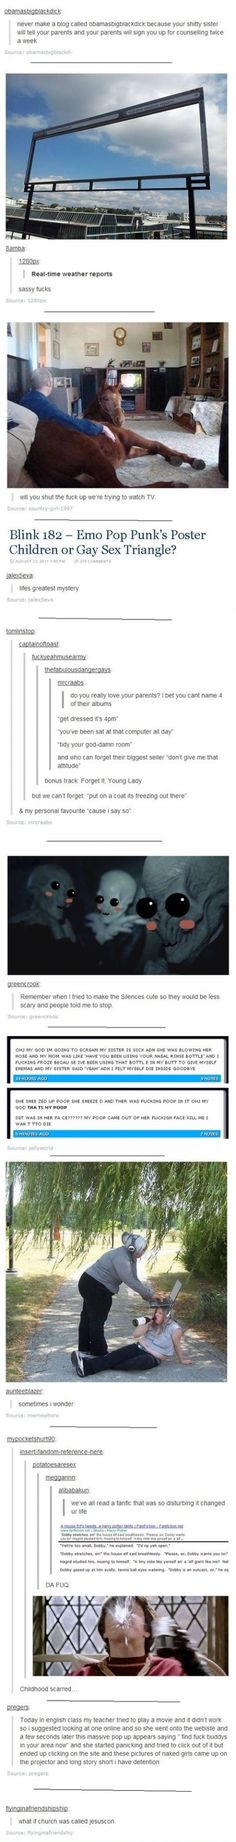 Tumblr Gold Compilation. These are all great, but the Harry potter one really did traumatize me!